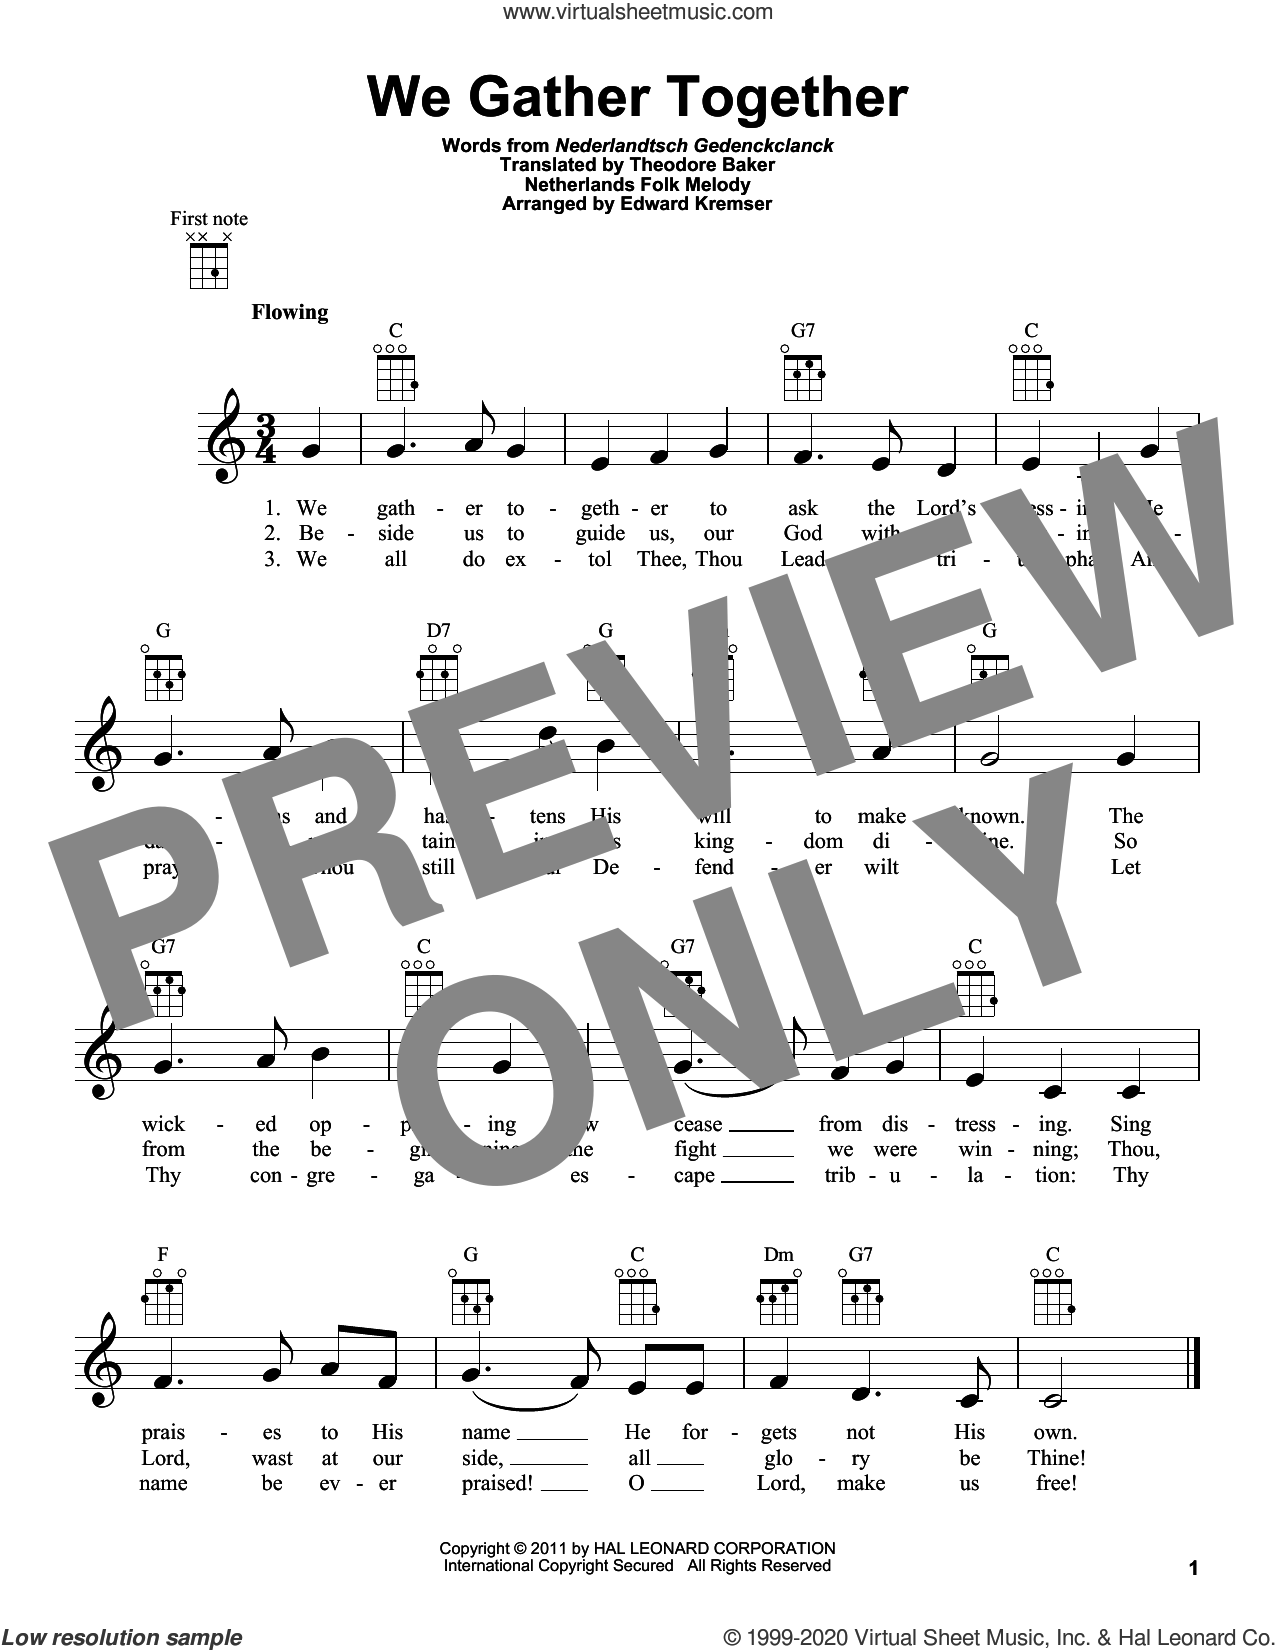 We Gather Together (arr. Eduard Kremser) sheet music for ukulele by Nederlandtsch Gedenckclanck, Eduard Kremser, Theodore Baker and Miscellaneous, classical score, intermediate skill level